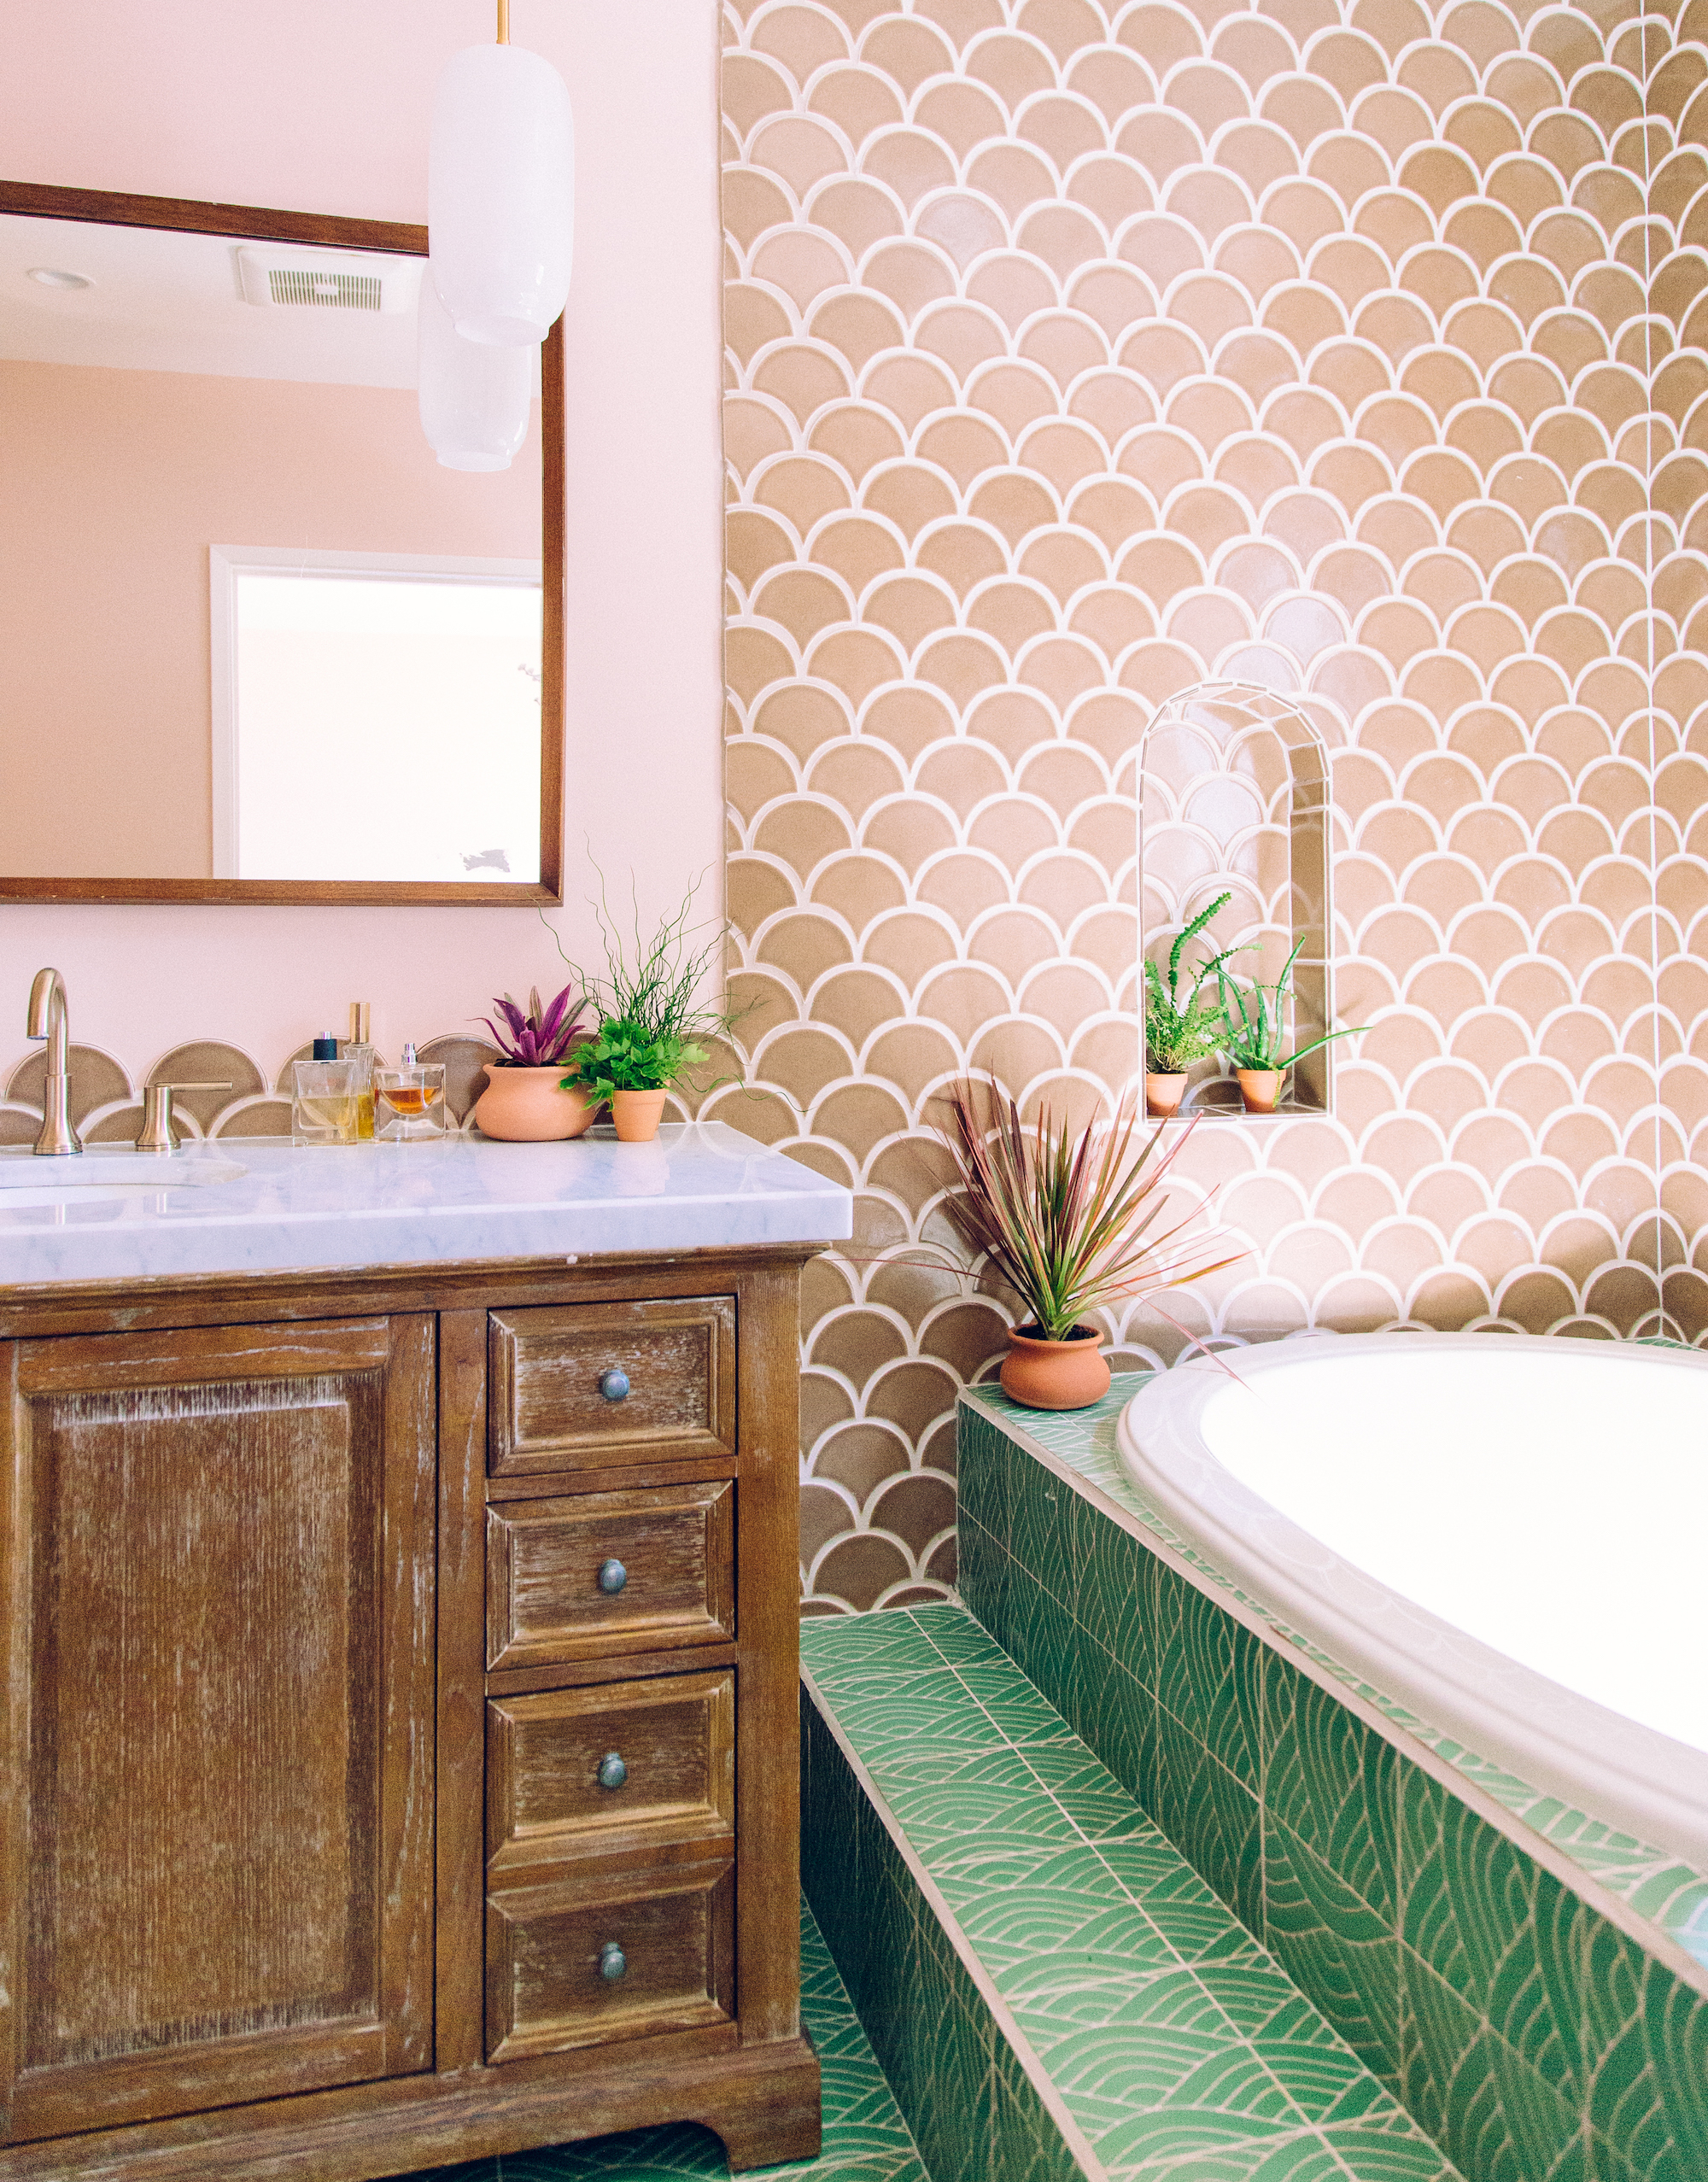 Q3_2018_image_residential_influencer_full-rights_Justina_Faith_Blakeney_parents_condo_masterbath_wall_niche_tile_nutmeg_ogee_drop_floor_handpainted_summit_green_motif_tub_surround_full_2.jpg?mtime=20181017115109#asset:421996